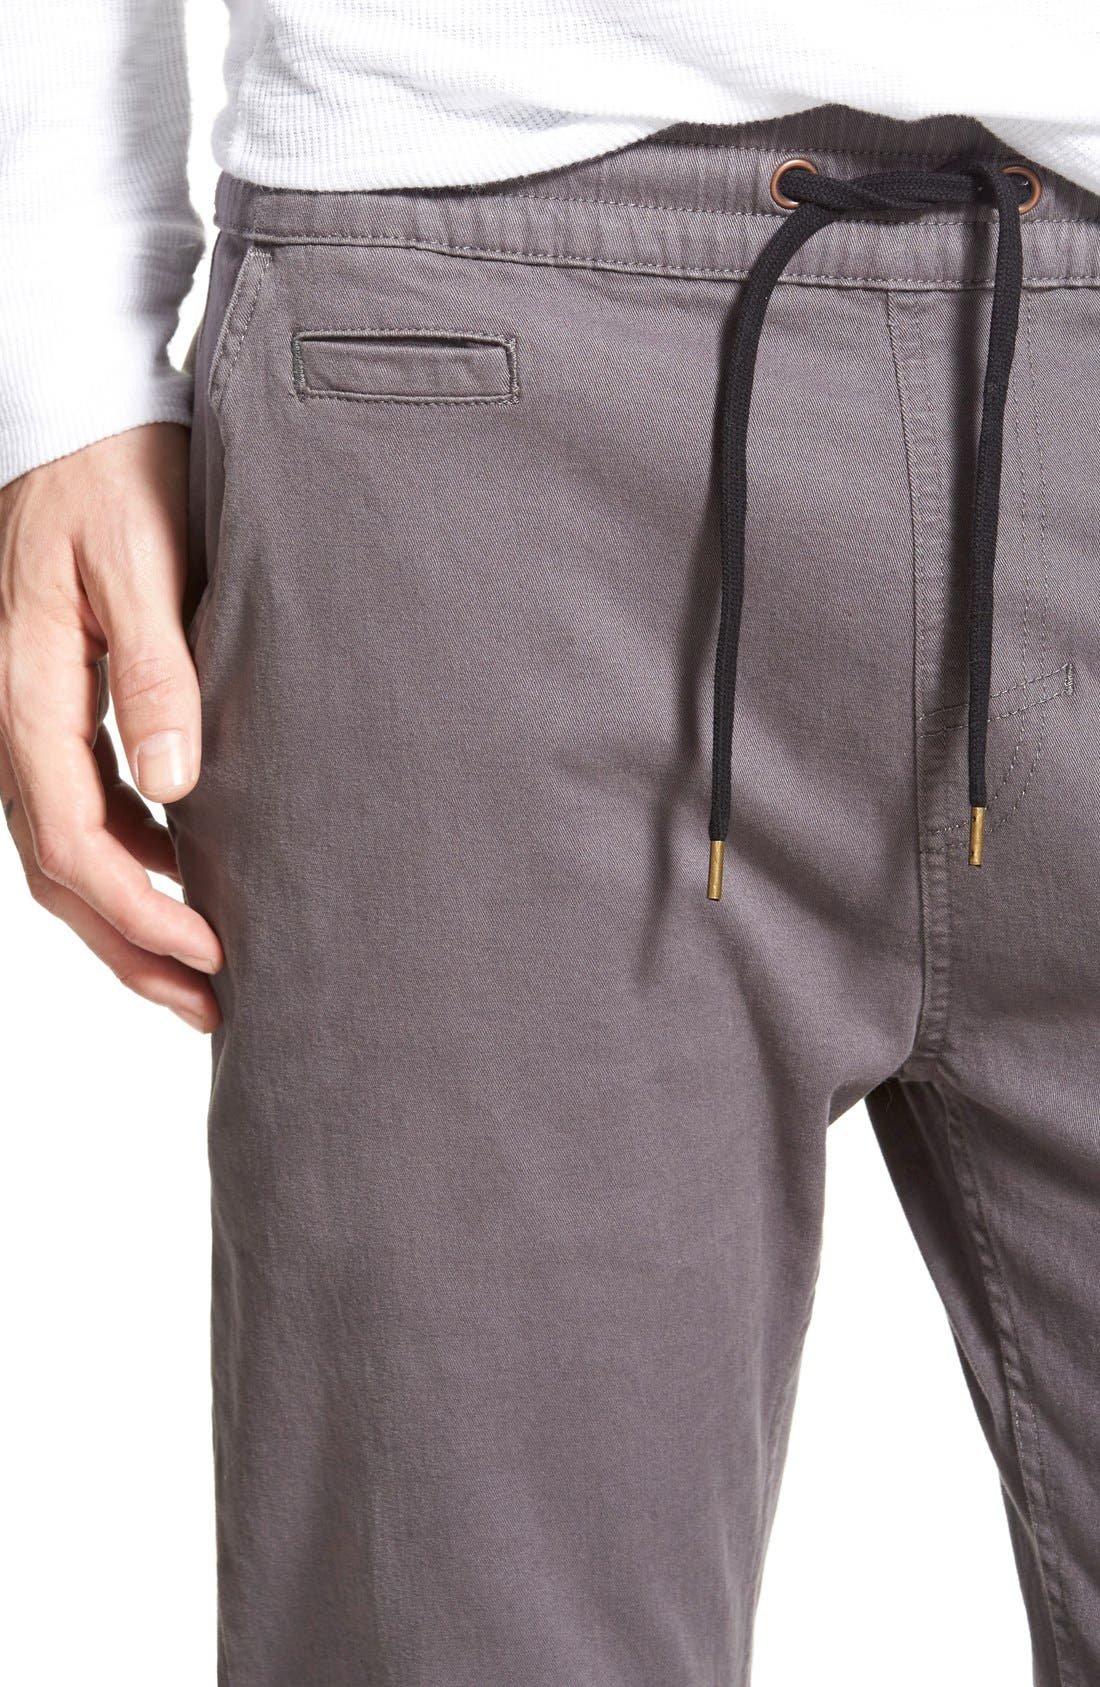 'Denny' Woven Jogger Pants,                             Alternate thumbnail 4, color,                             Charcoal